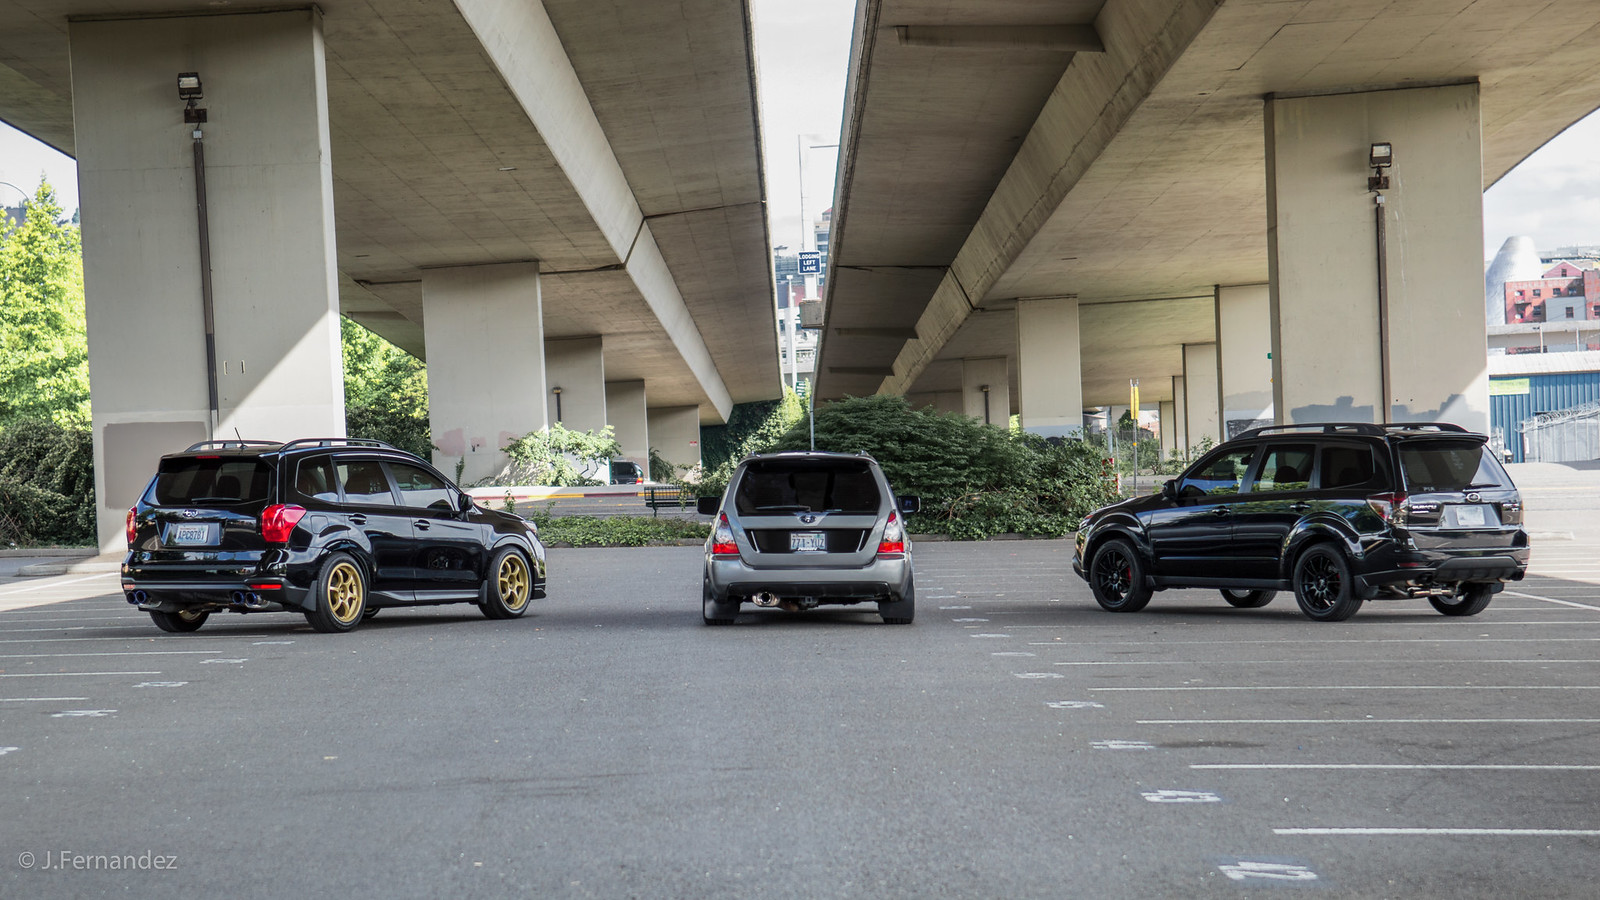 pacific northwest impromptu shoot subaru forester owners